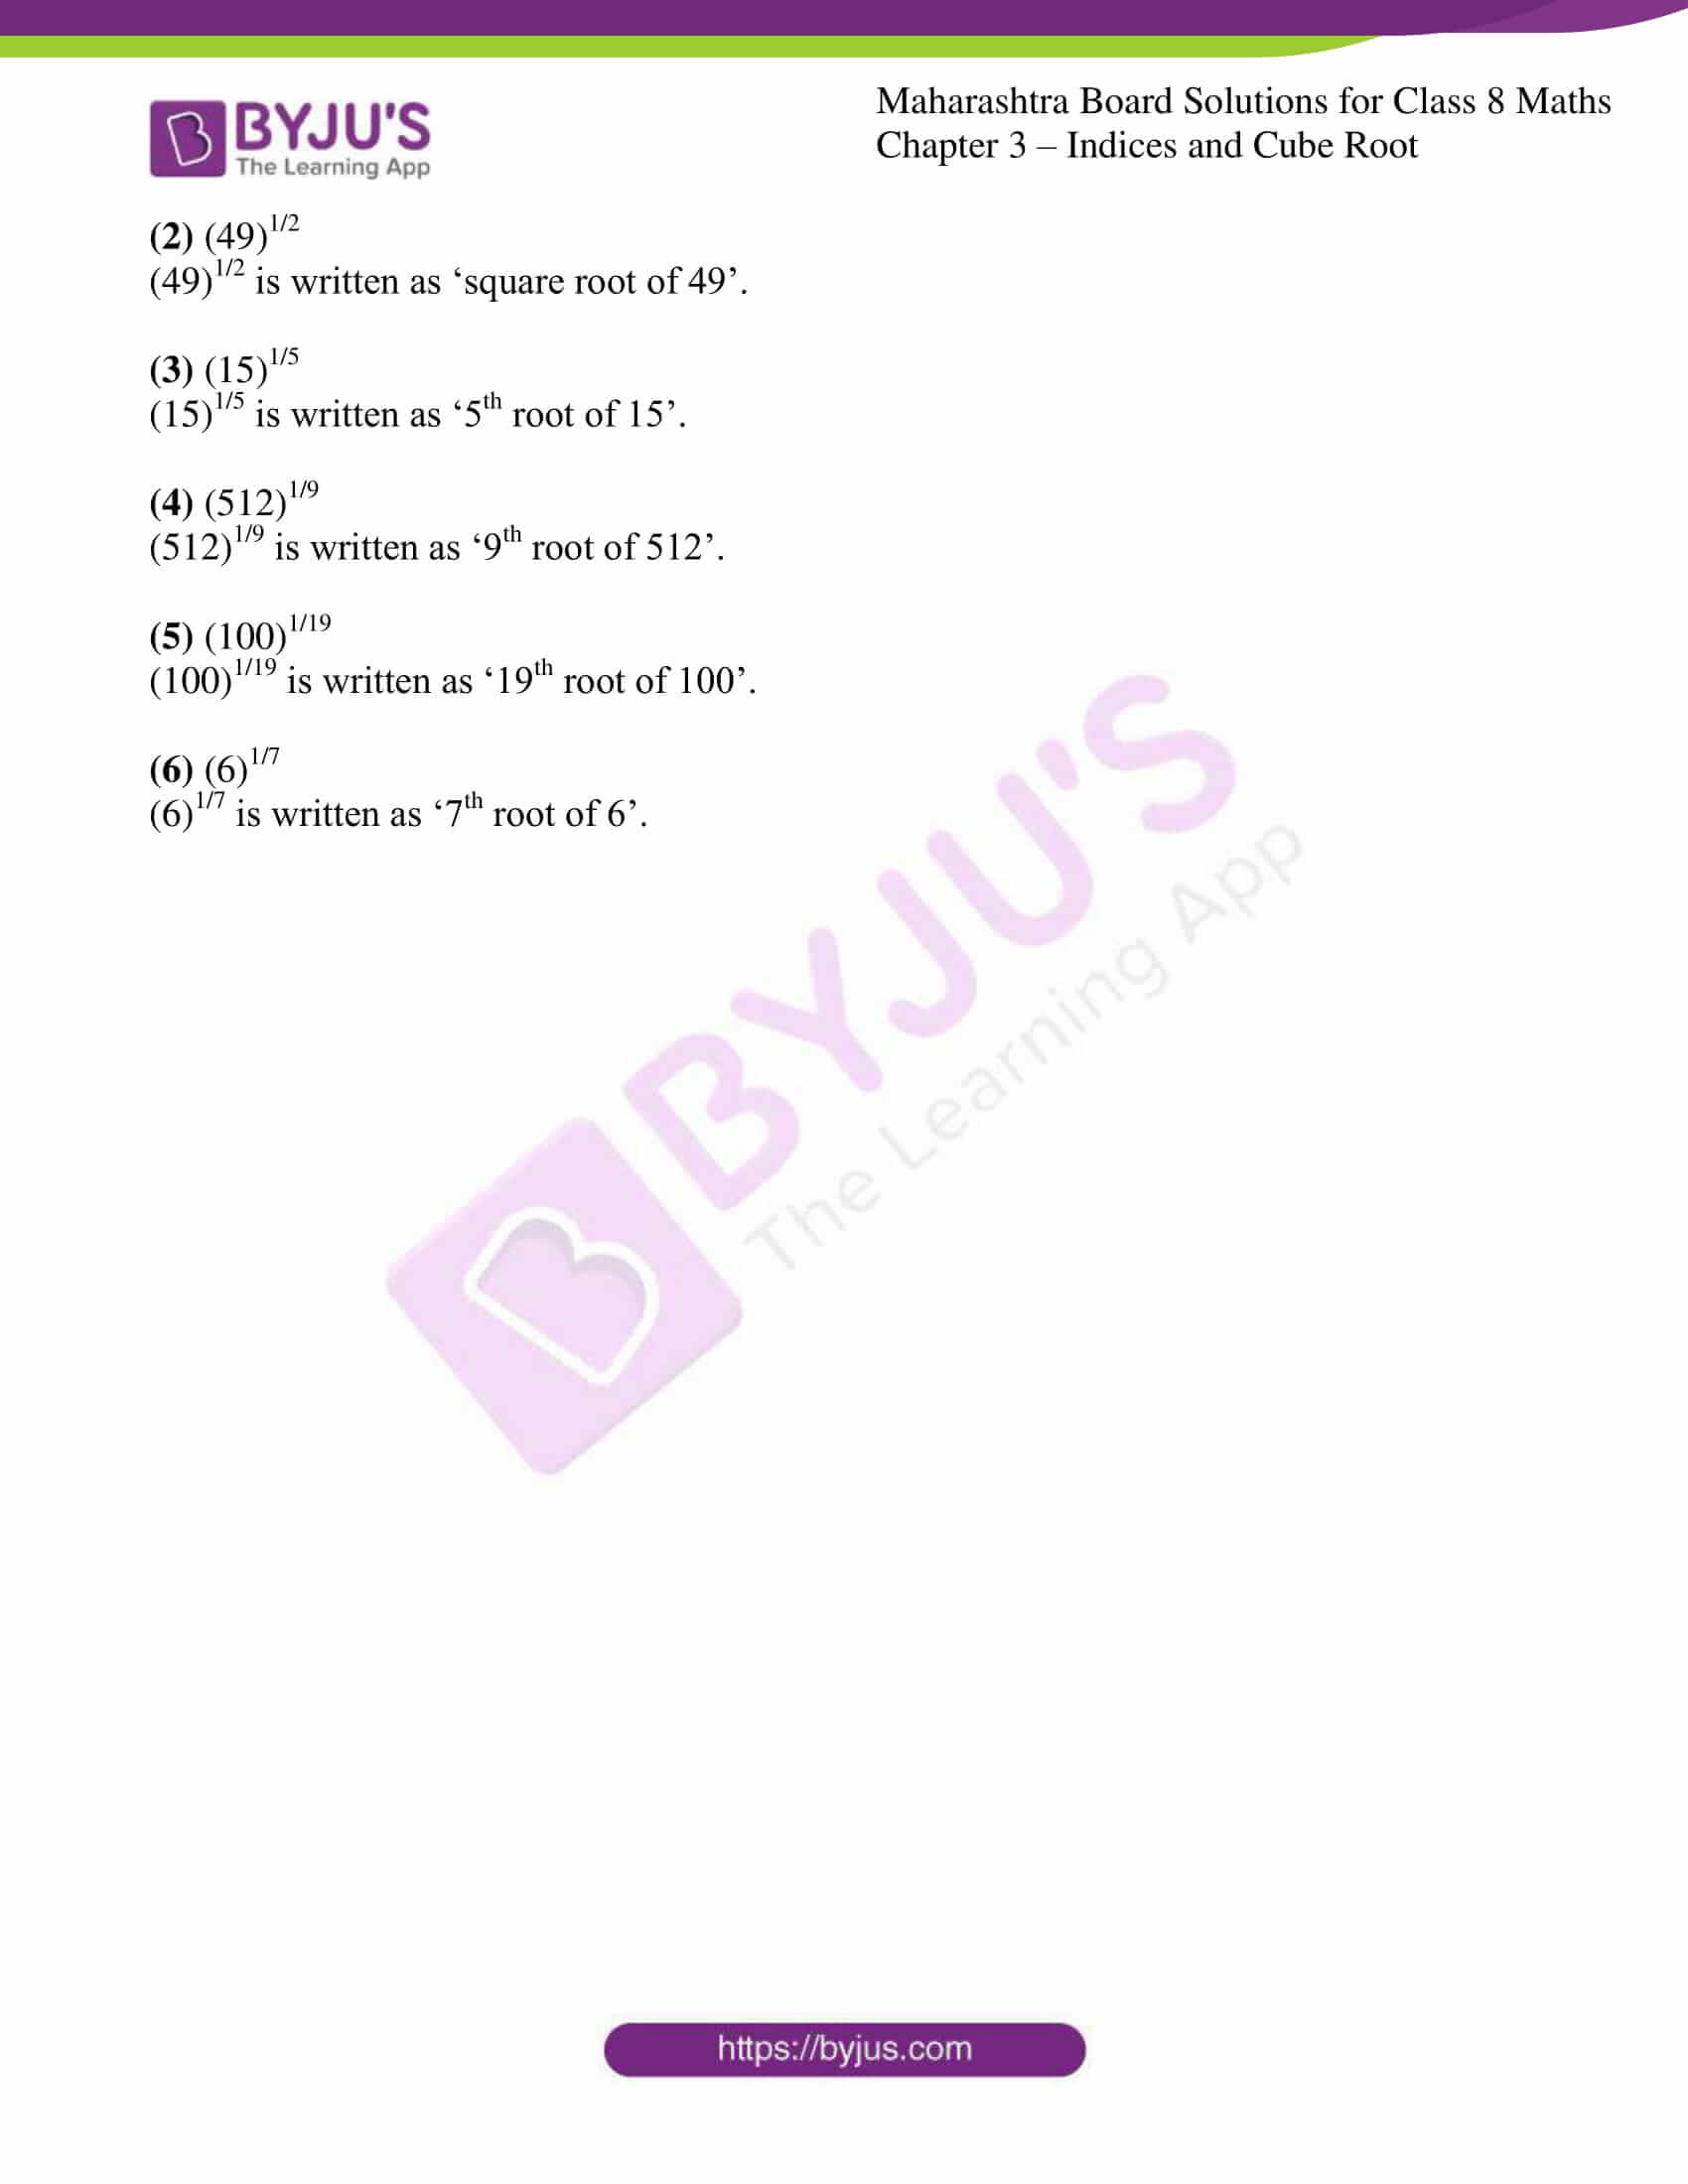 msbshse sol for class 8 maths chapter 3 2